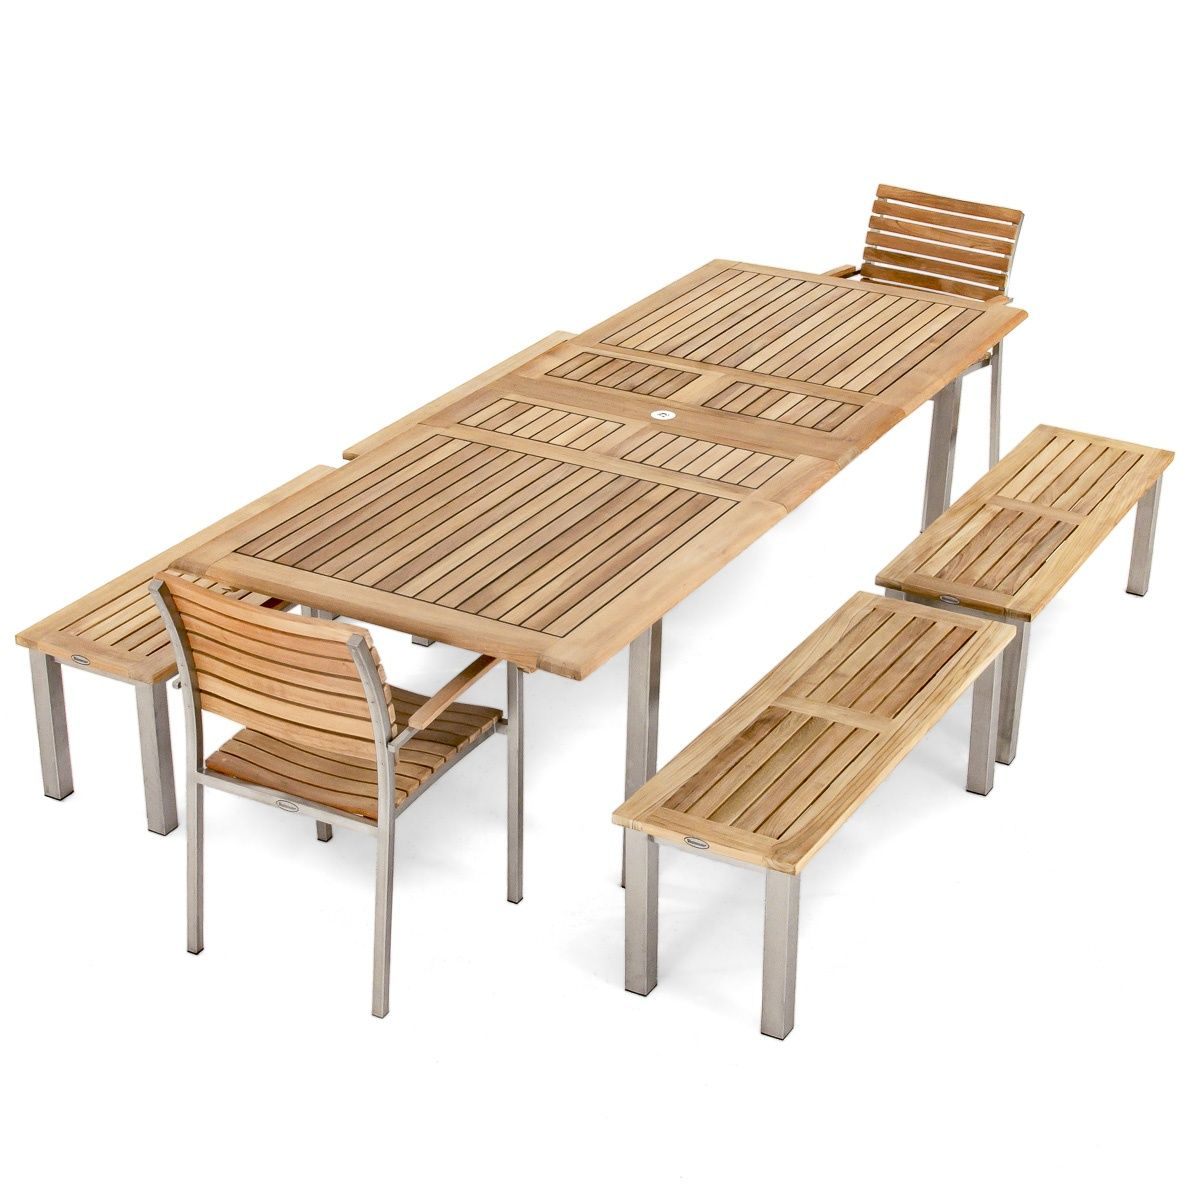 Teak And Stainless Steel Outdoor Dining Set Seats 10 Includes 2